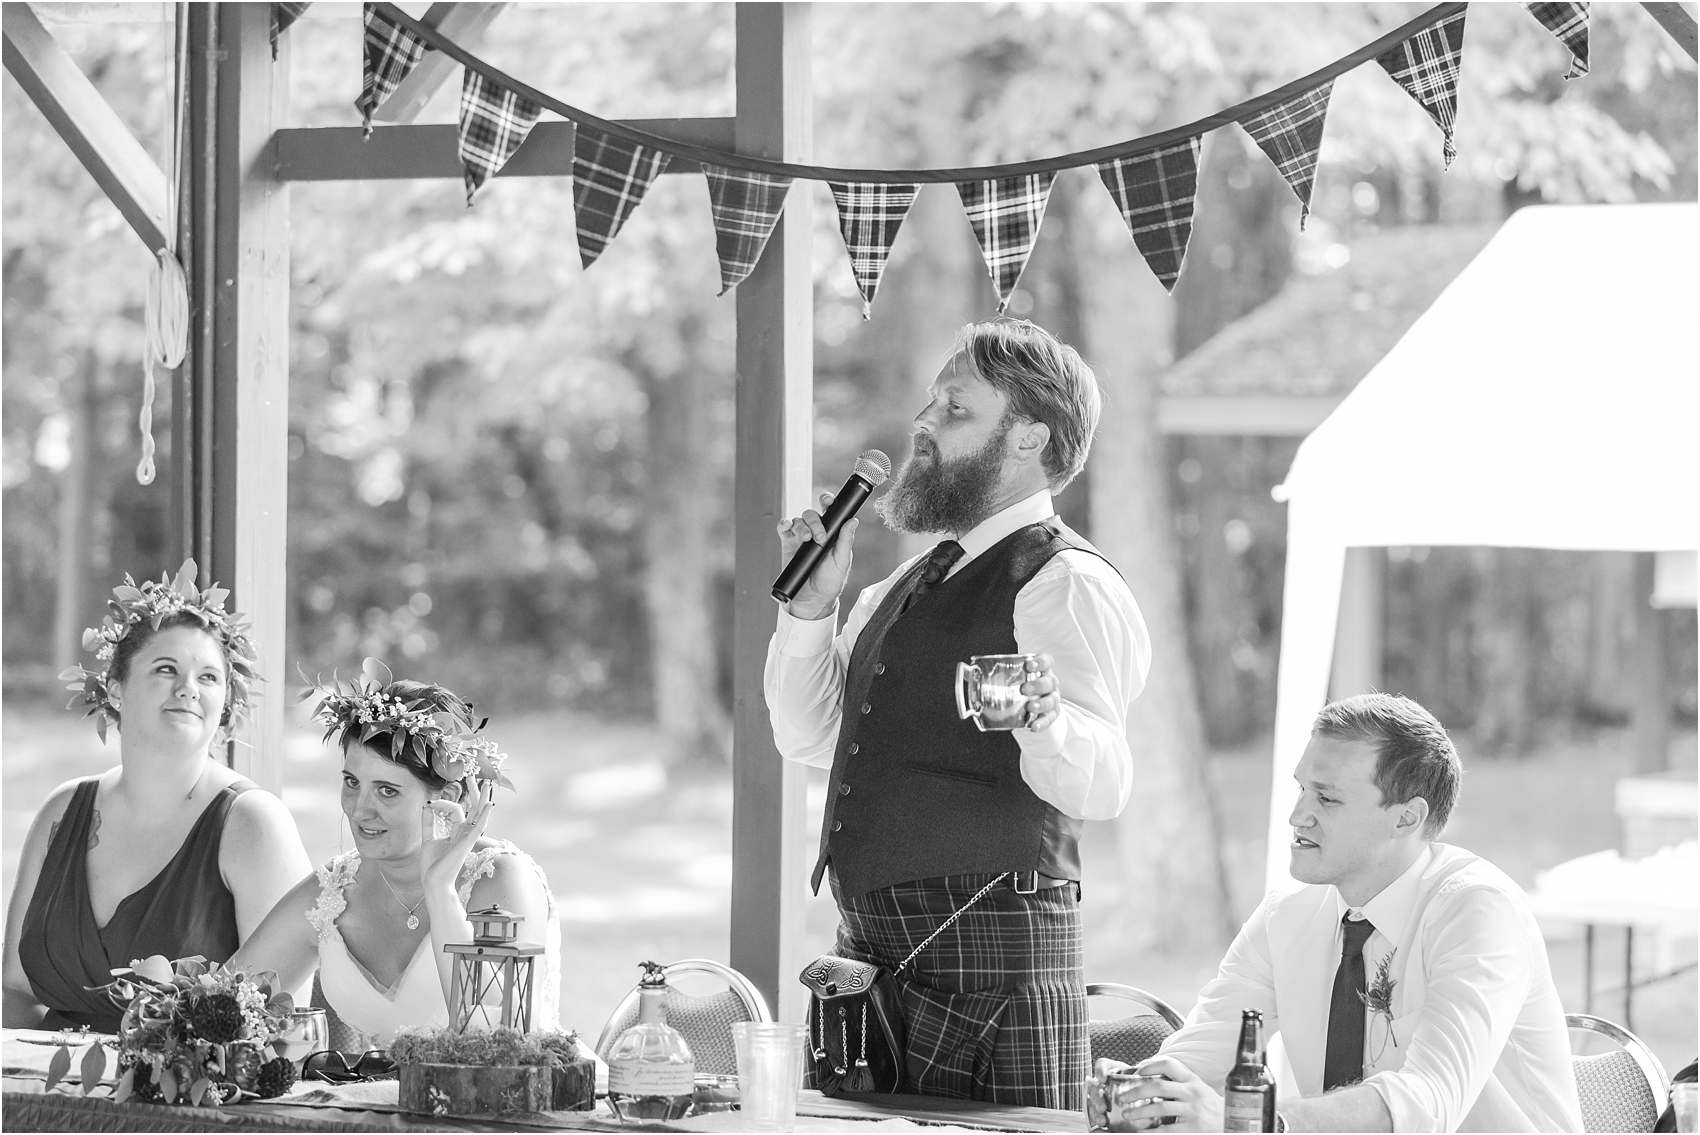 scottish-inspired-wedding-photos-in-the-country-in-port-sanilac-michigan-by-courtney-carolyn-photography_0057.jpg